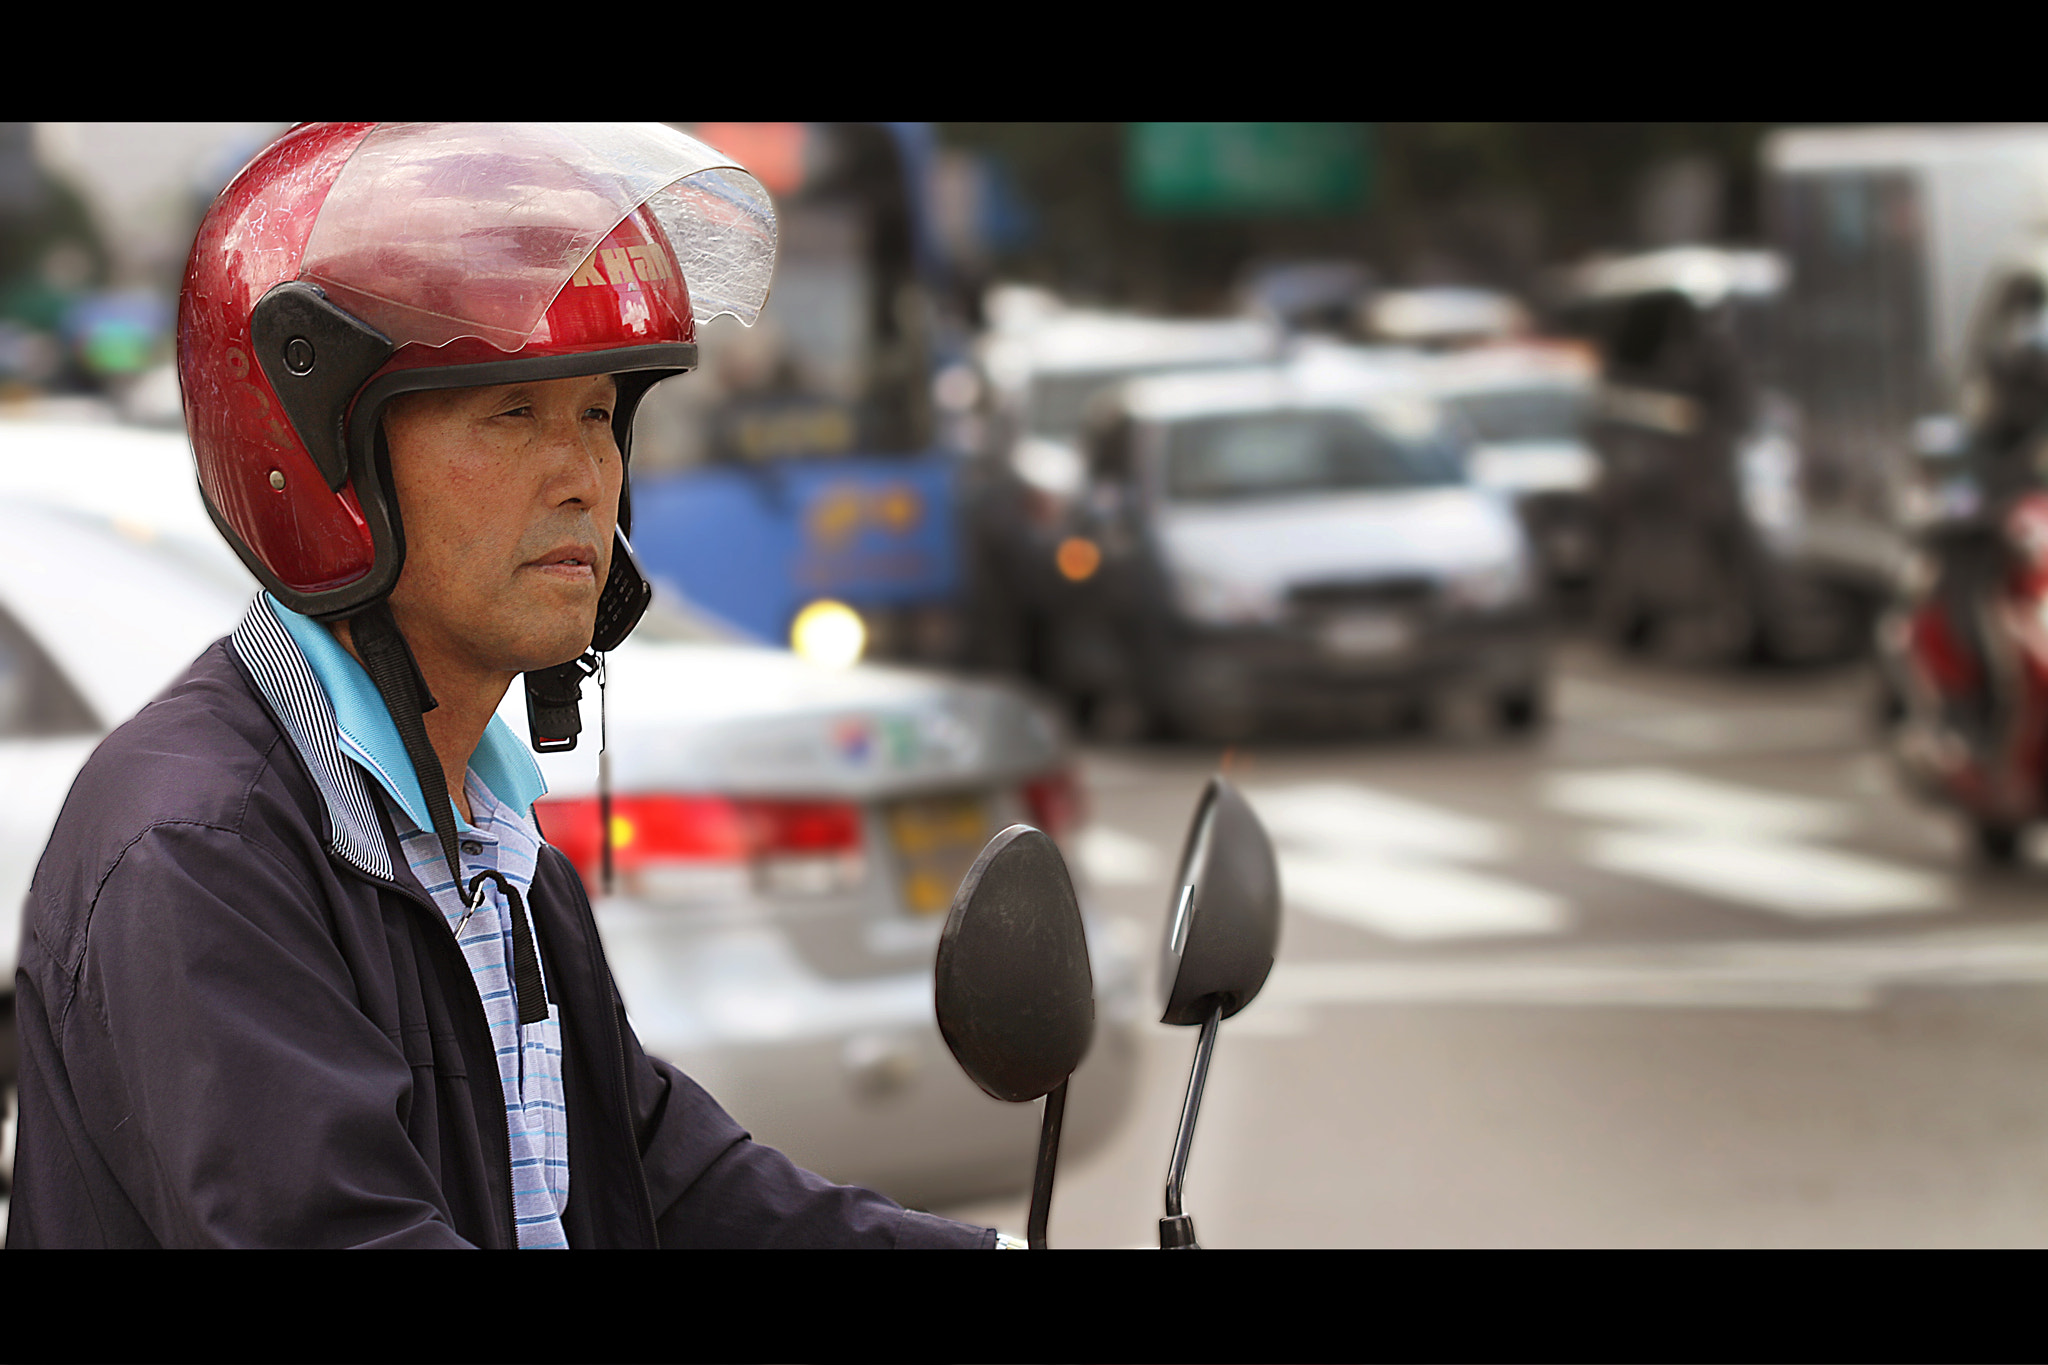 Photograph Seoul street - On his moped by L'Oiseau Rose on 500px